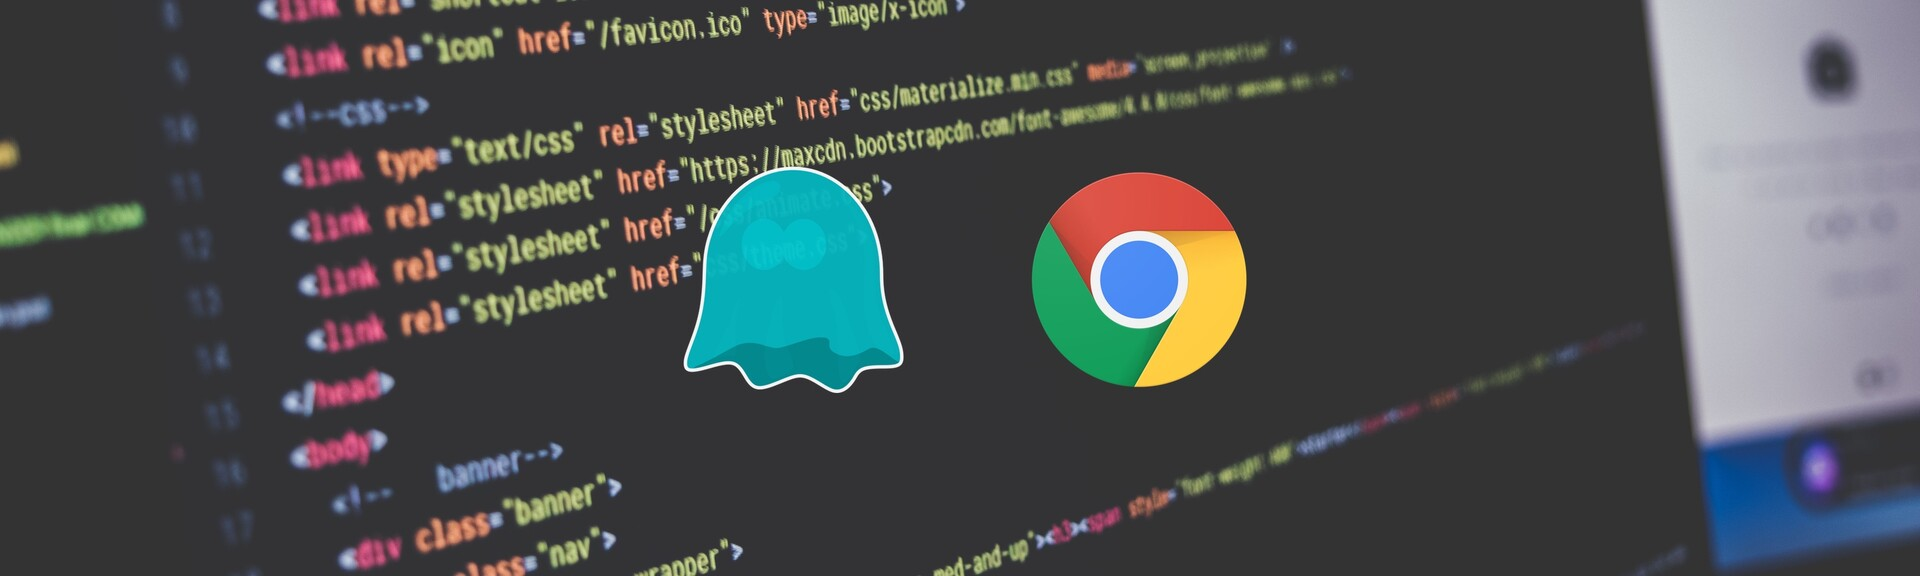 How GitLab switched to Headless Chrome for testing | GitLab